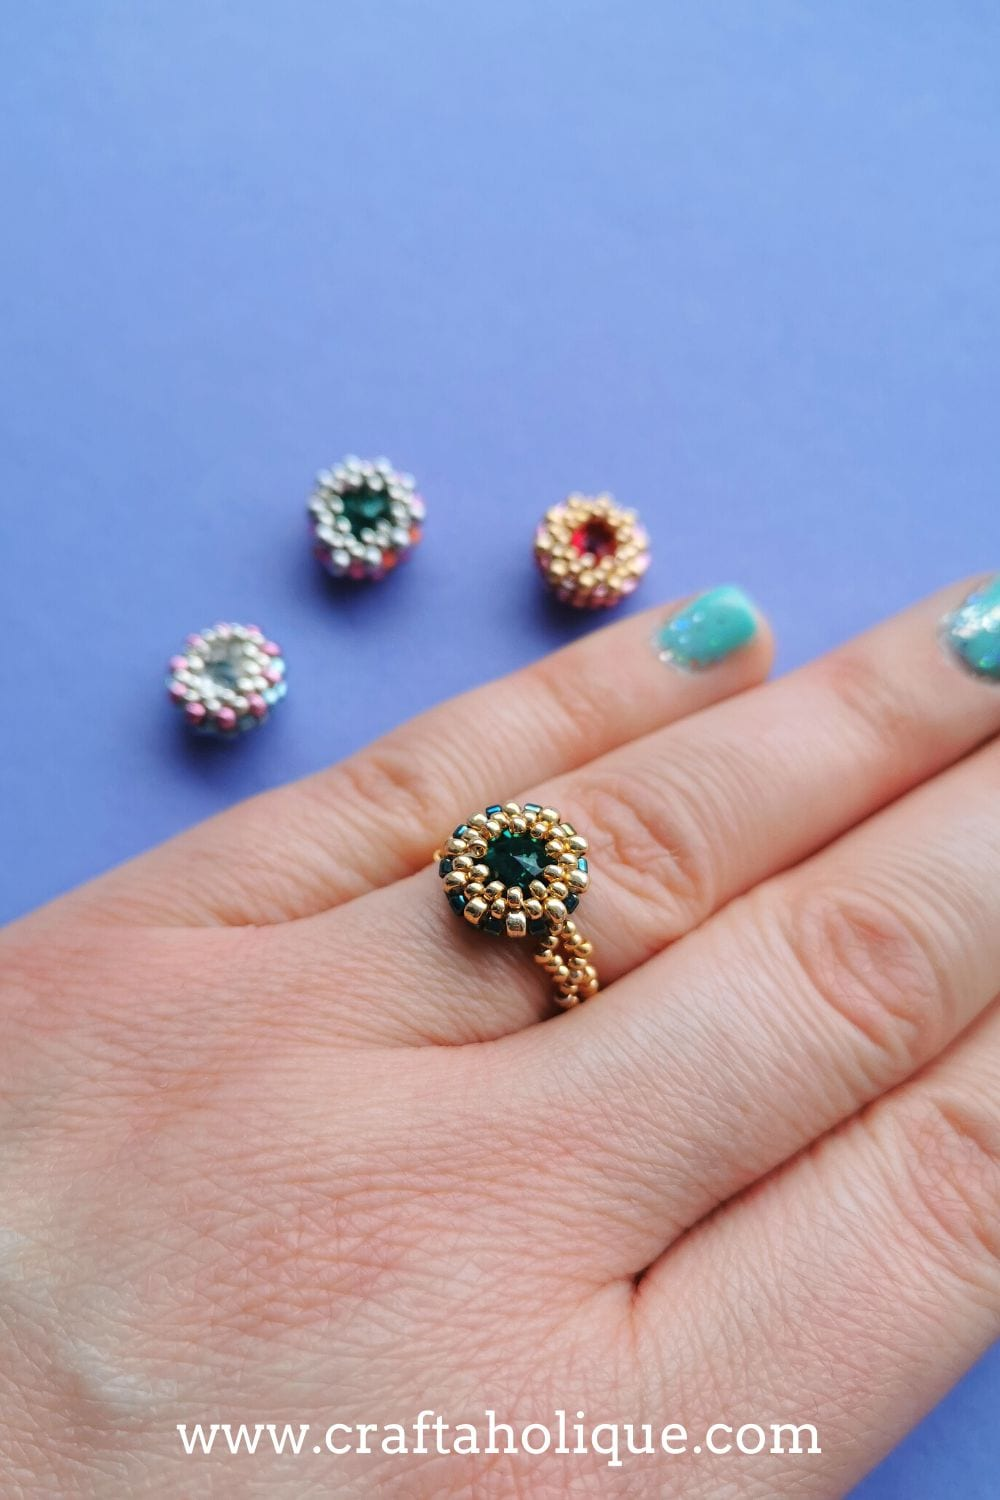 A beaded ring made with a crystal rivoli and a seed bead bezel.